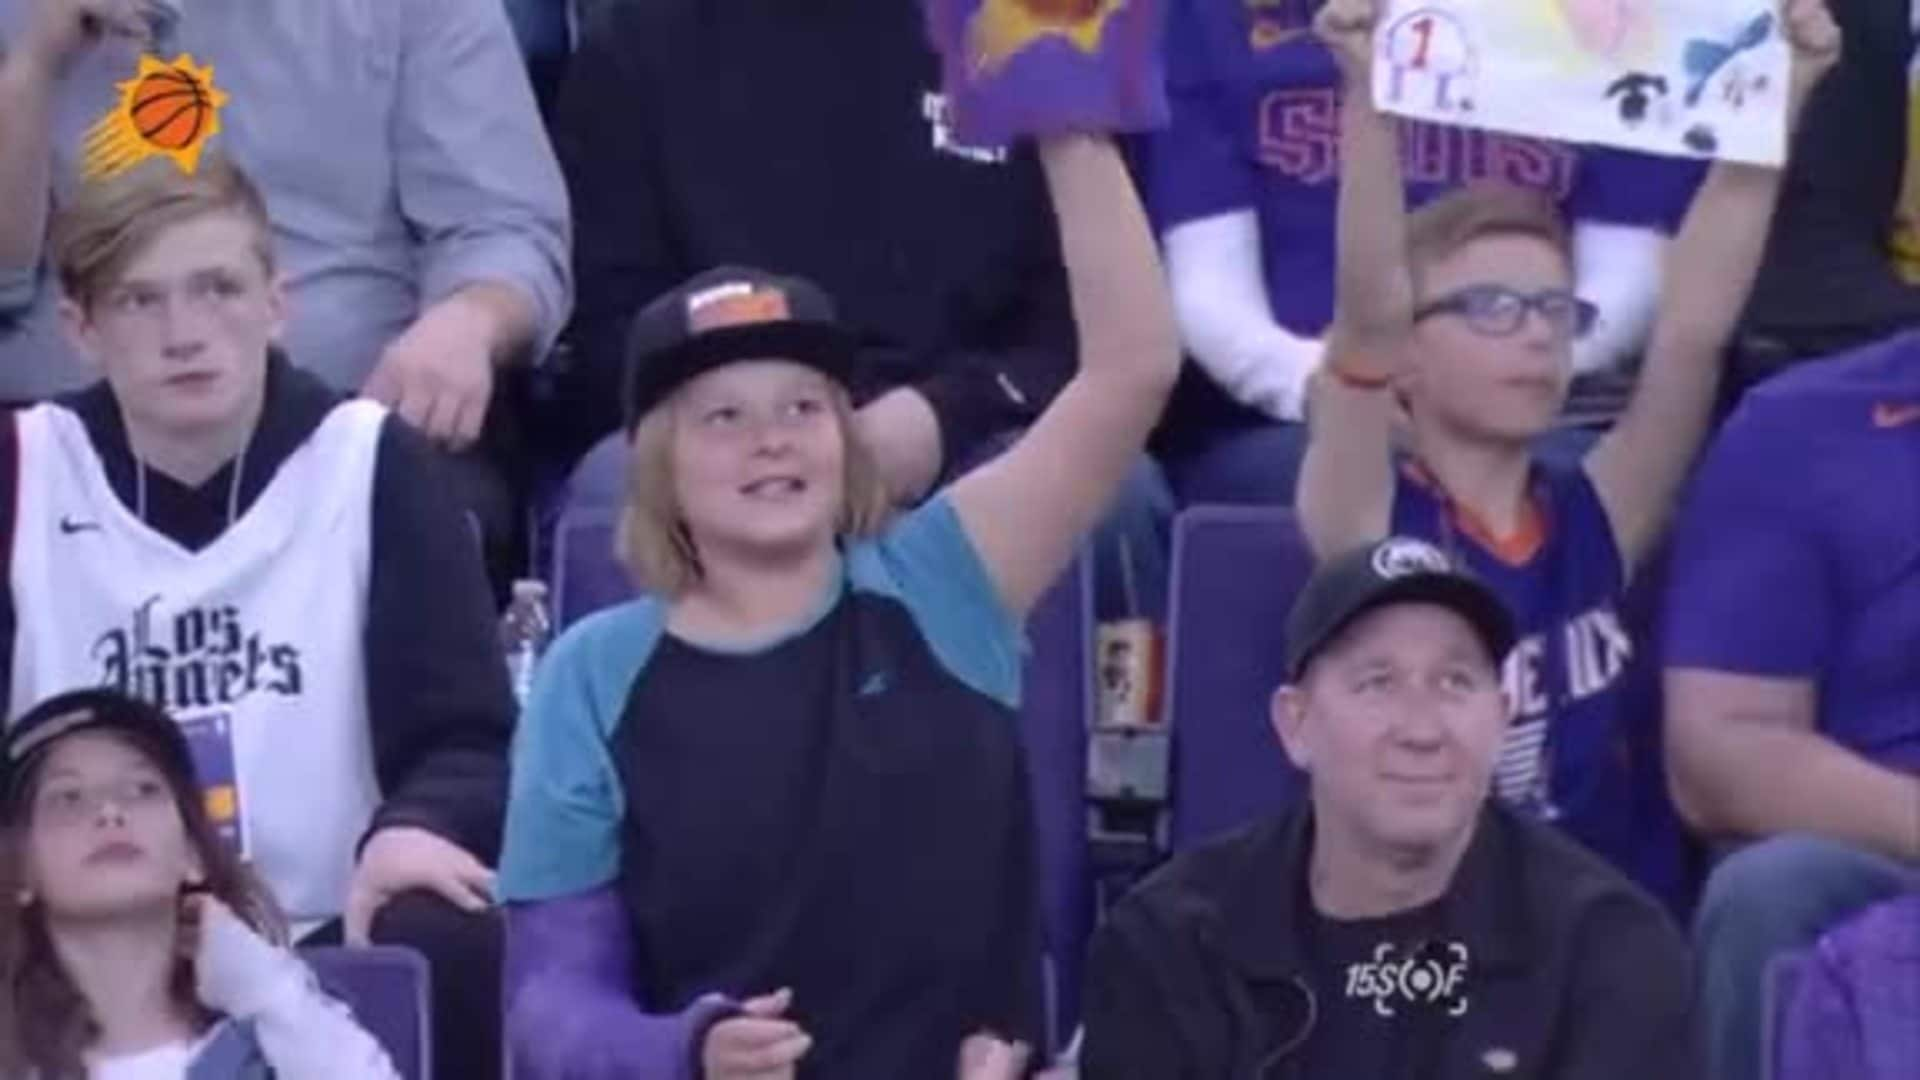 15SOF | Fan with a Broken Arm and a Foam Finger